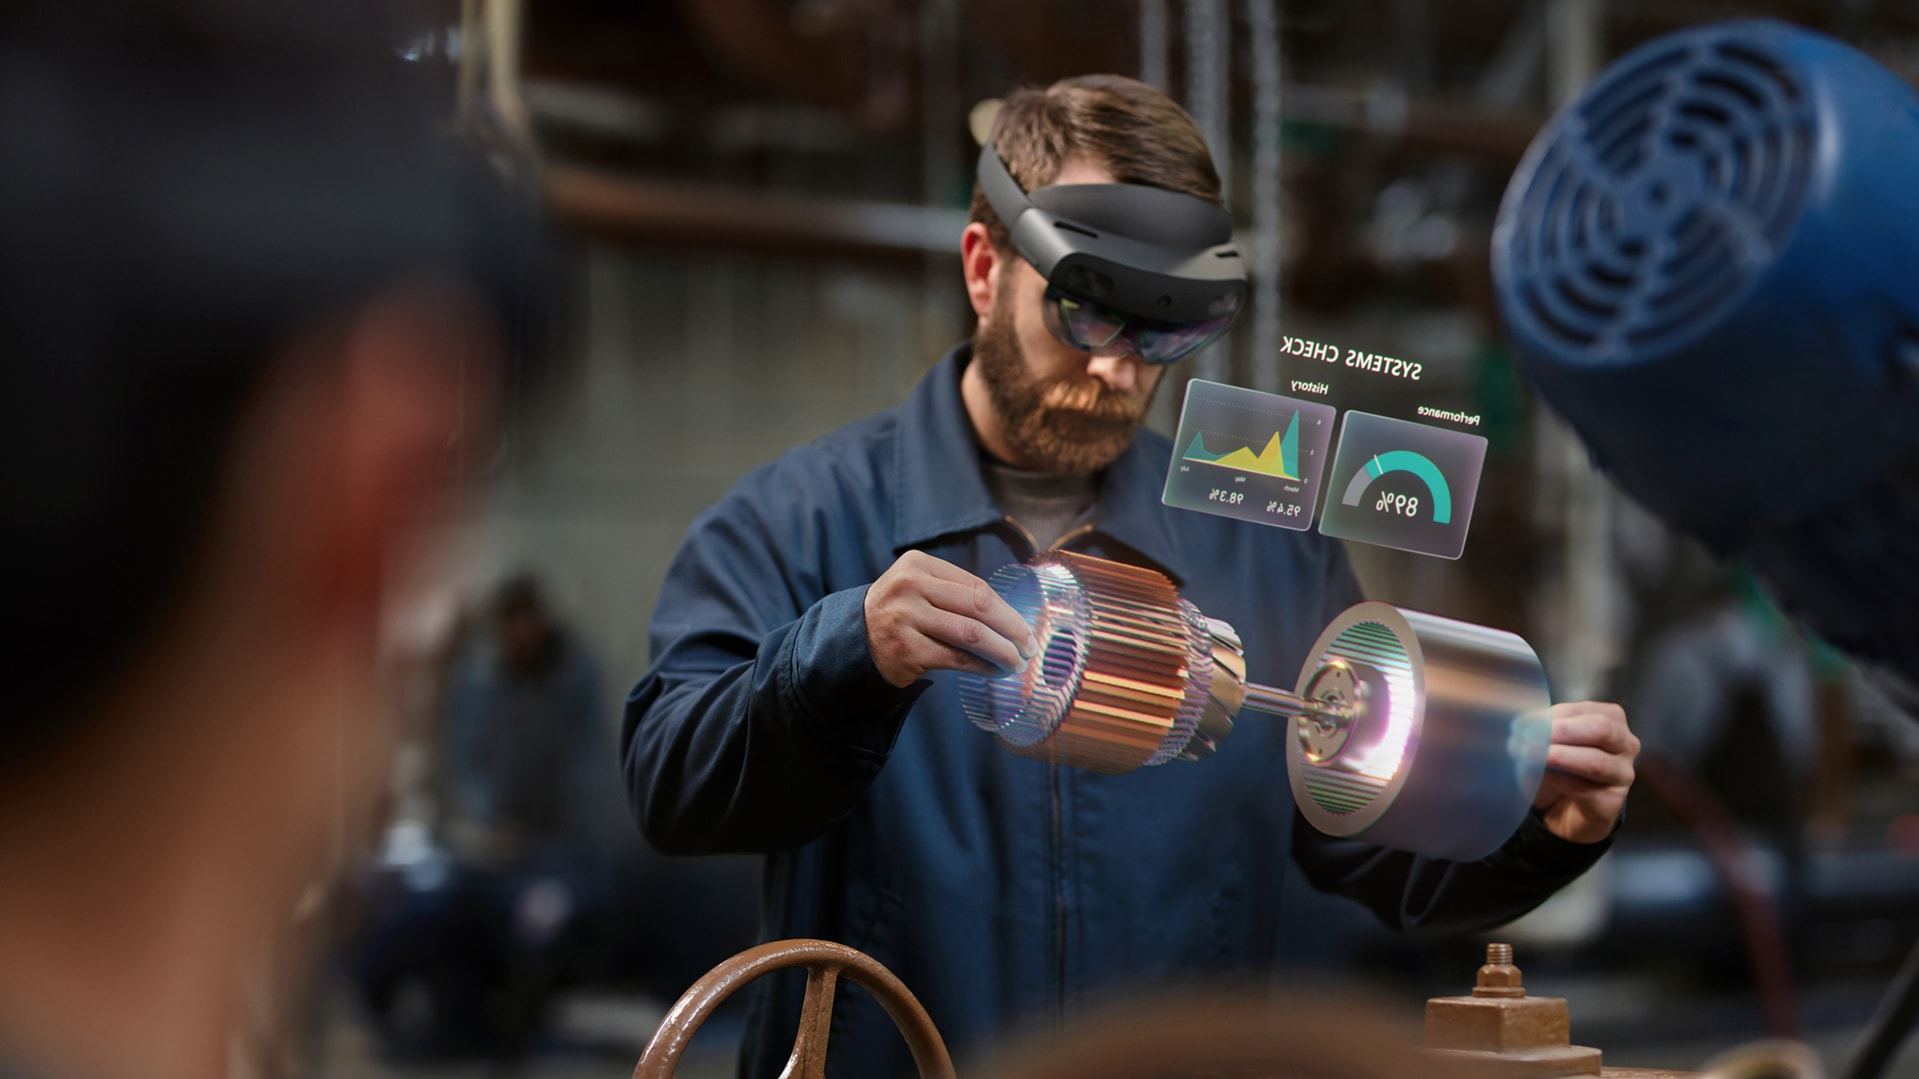 A man uses his HoloLens device at work